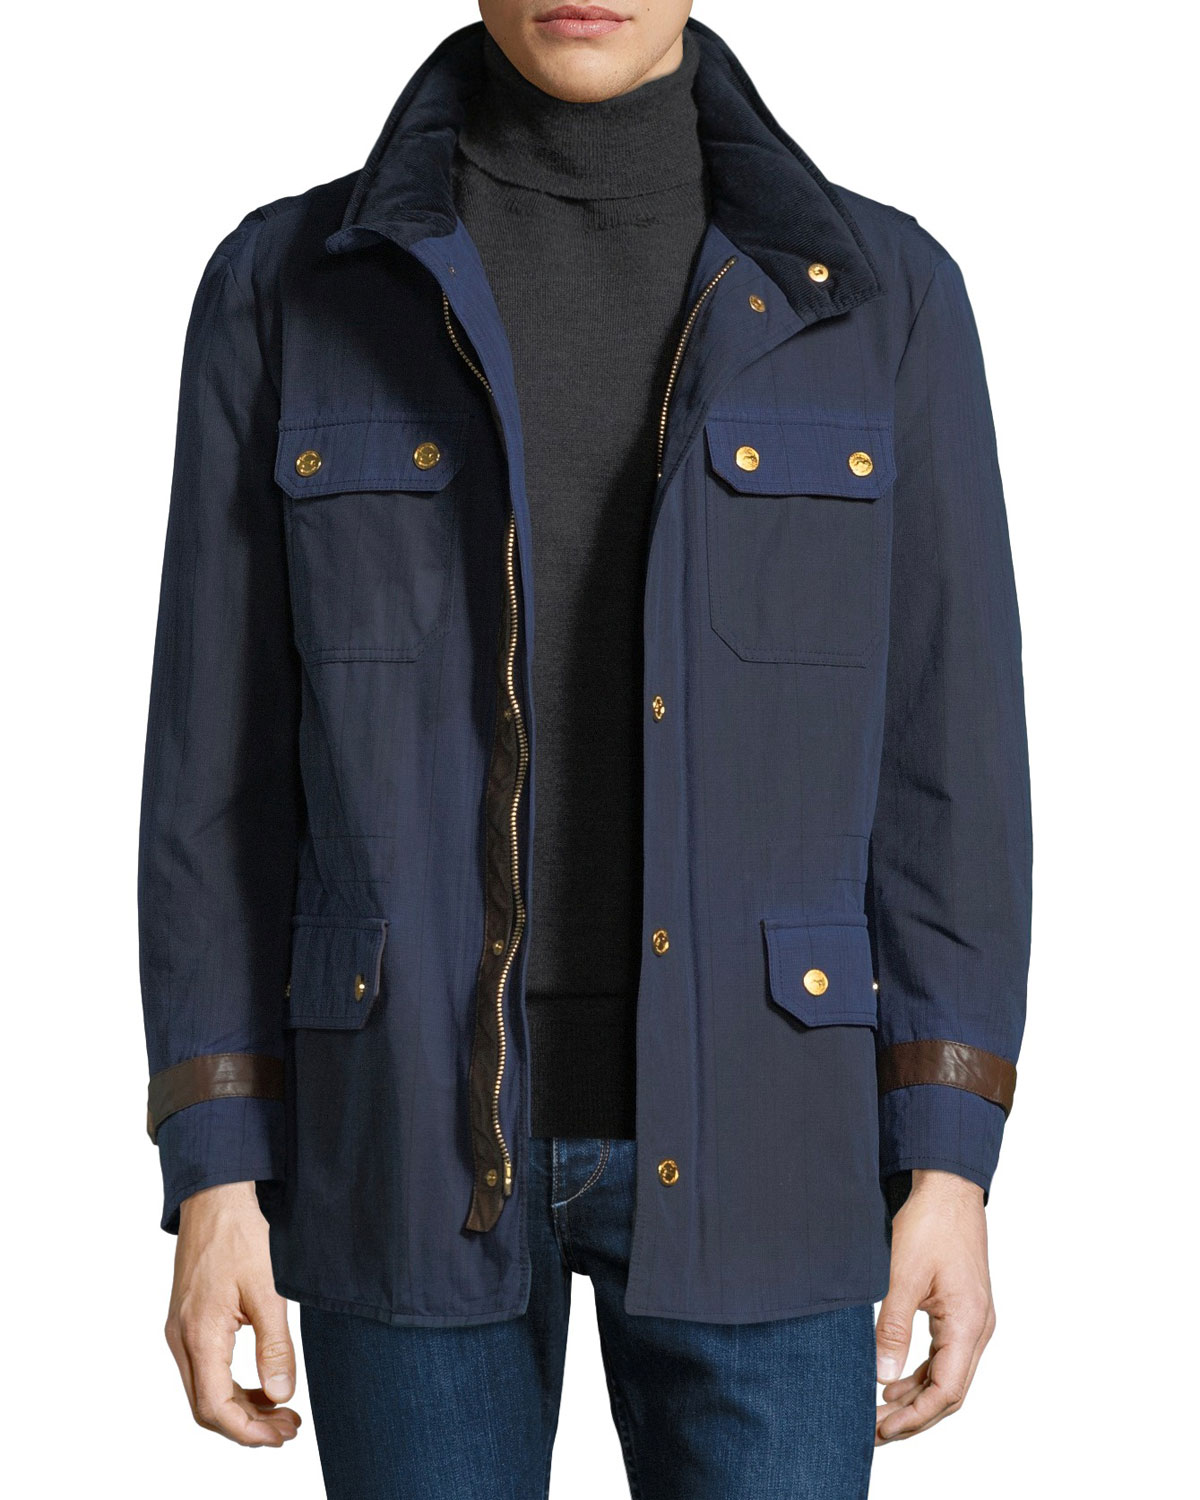 Stefano Ricci Men's Blue Waxed Cotton Sport Jacket